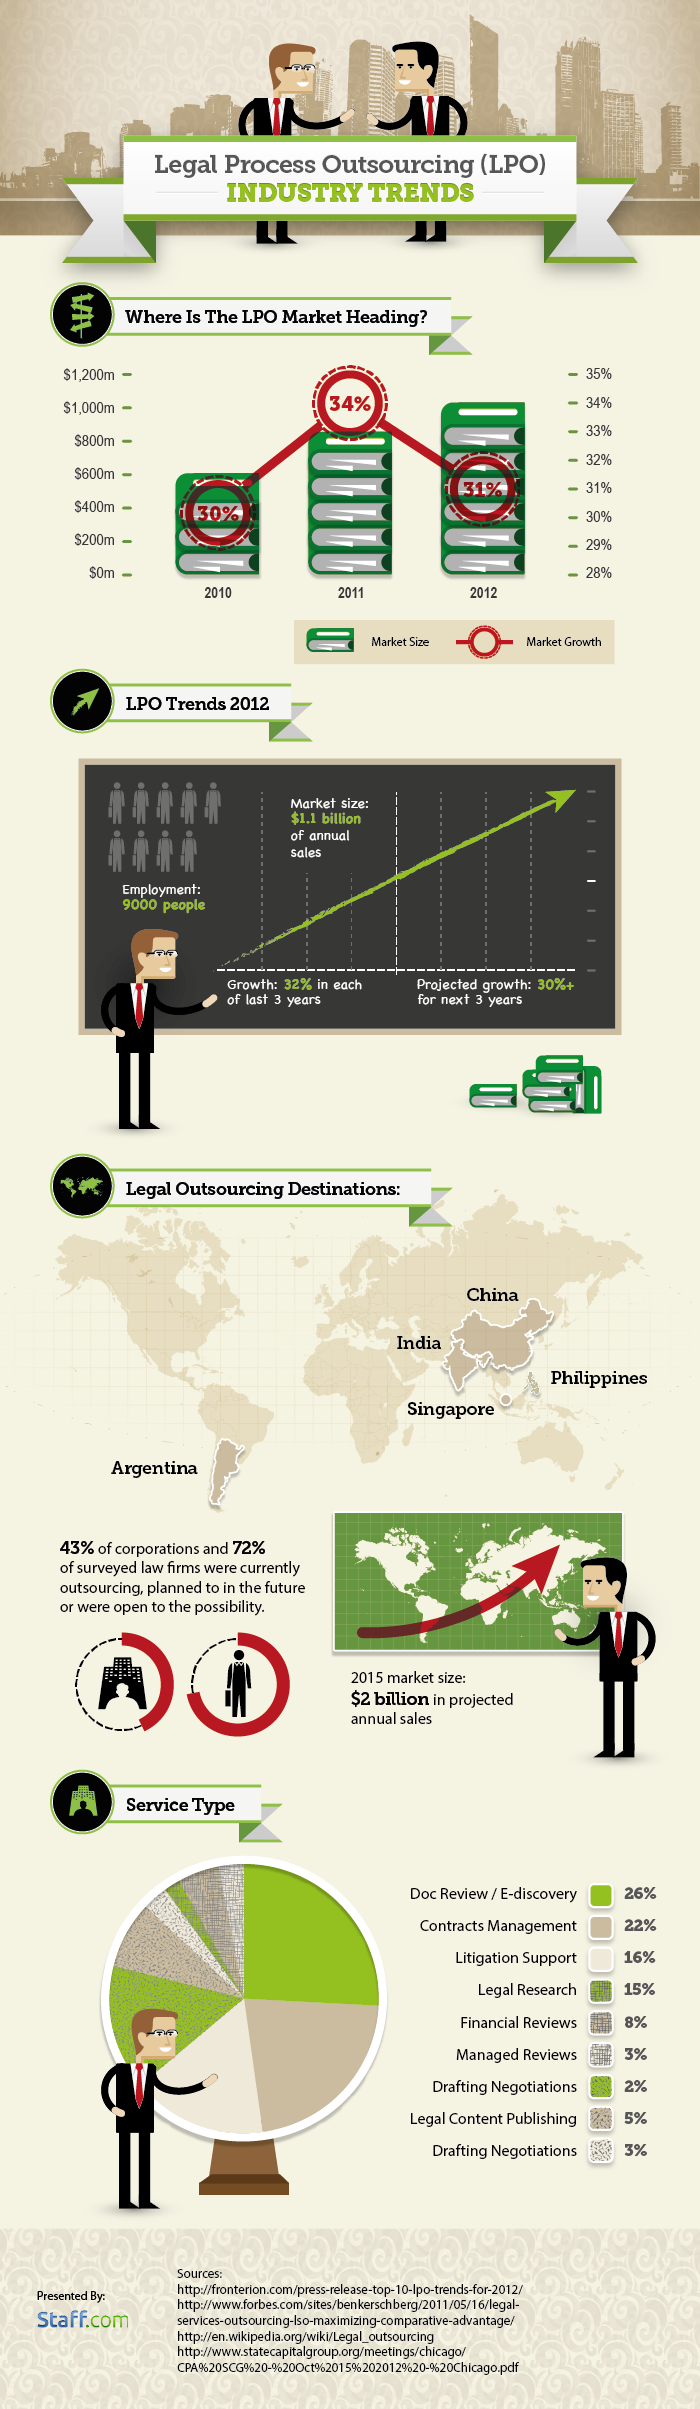 Outsourced Law: Legal Process Outsourcing facts that will keep you informed